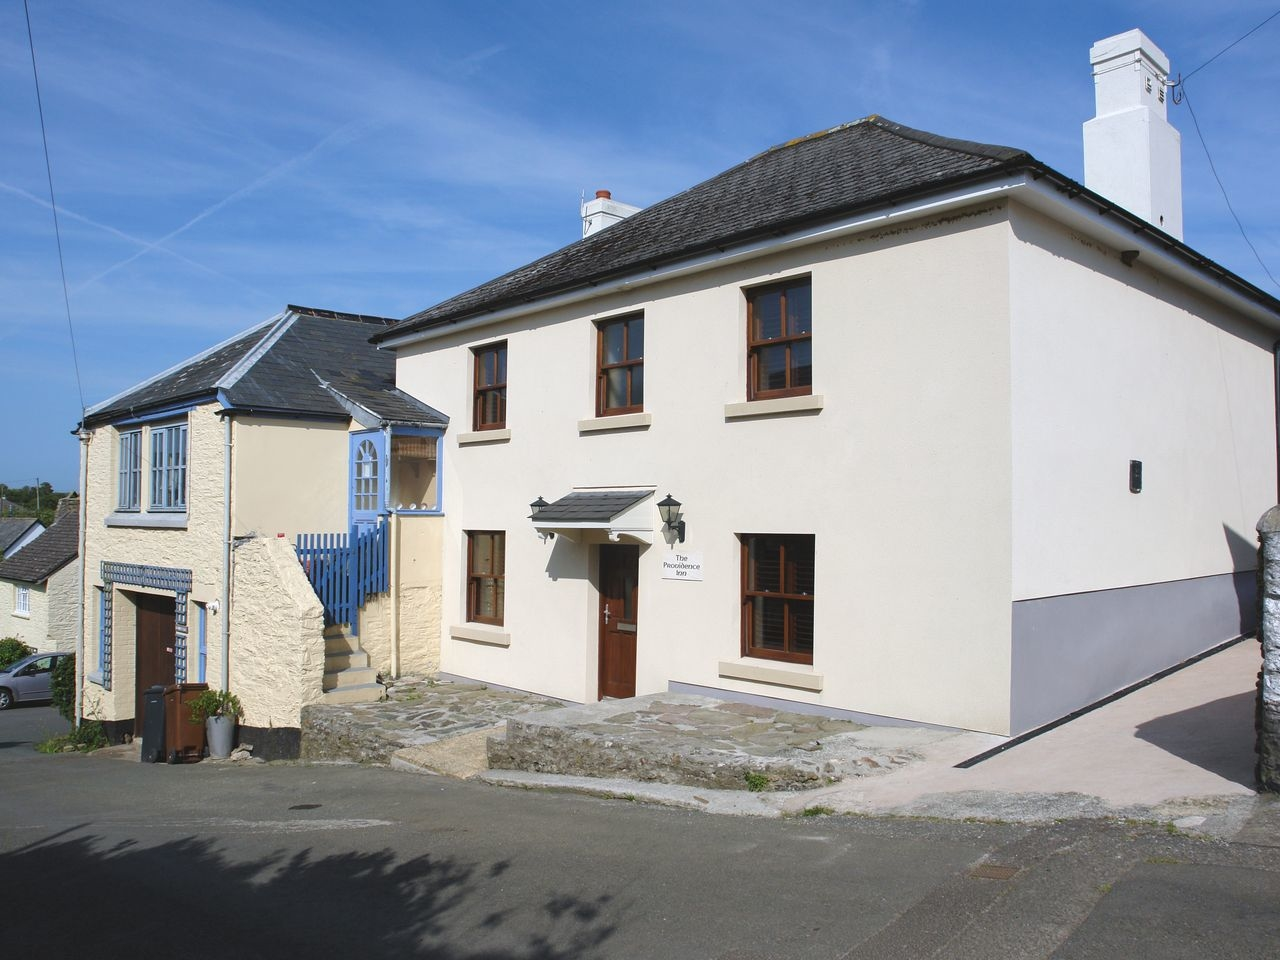 6 bedroom Cottage for rent in Starcross